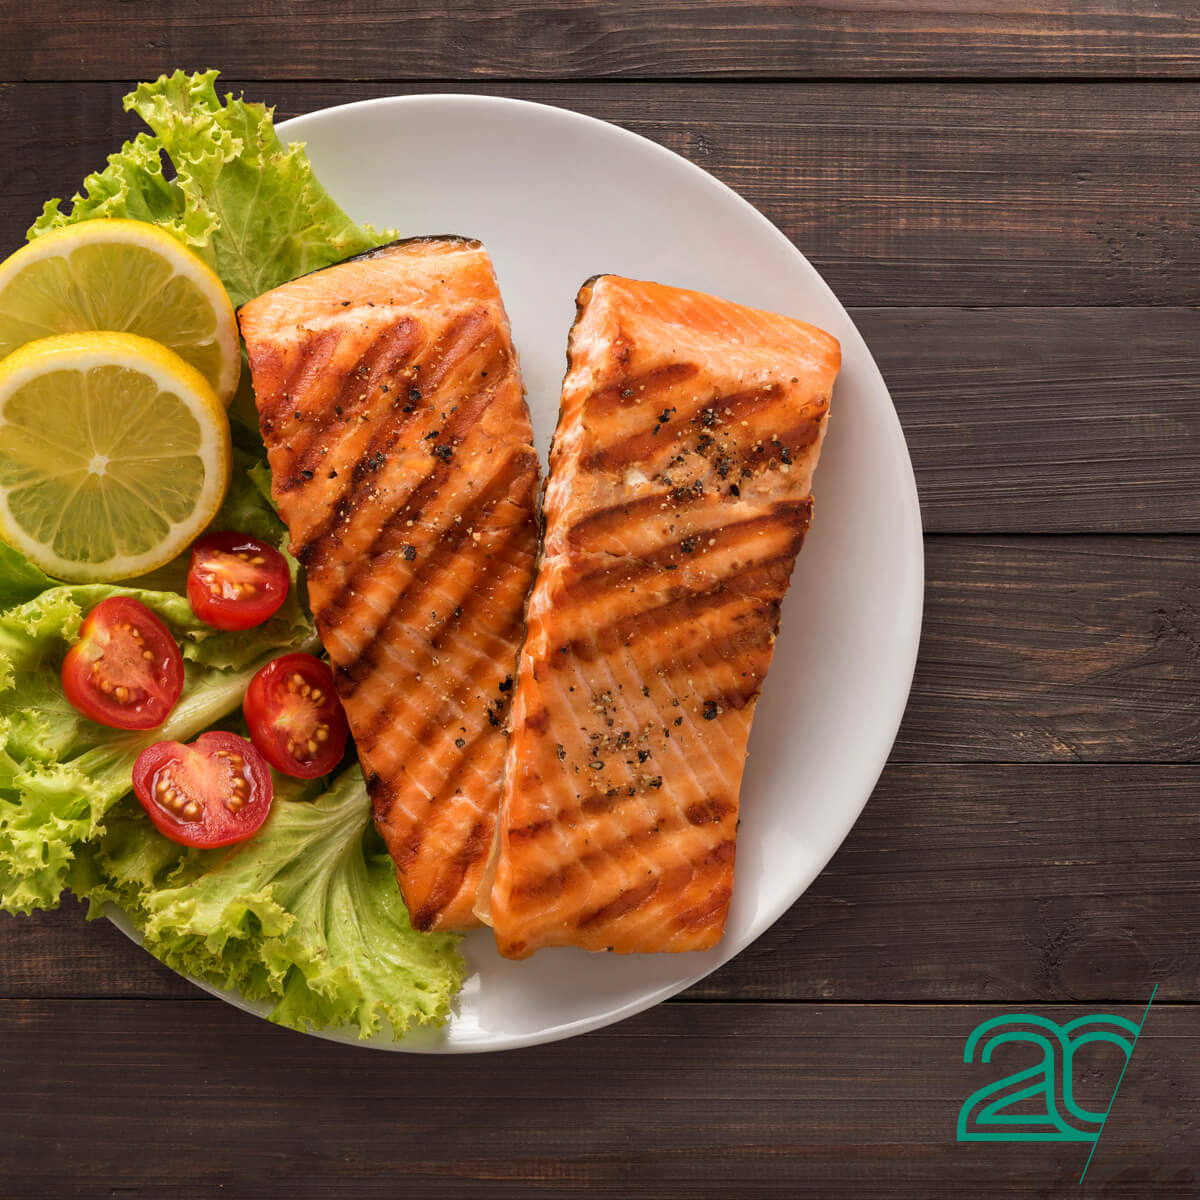 A Grilled Salmon Plate, Part of 20PerFit Anti-Inflammatory Diet